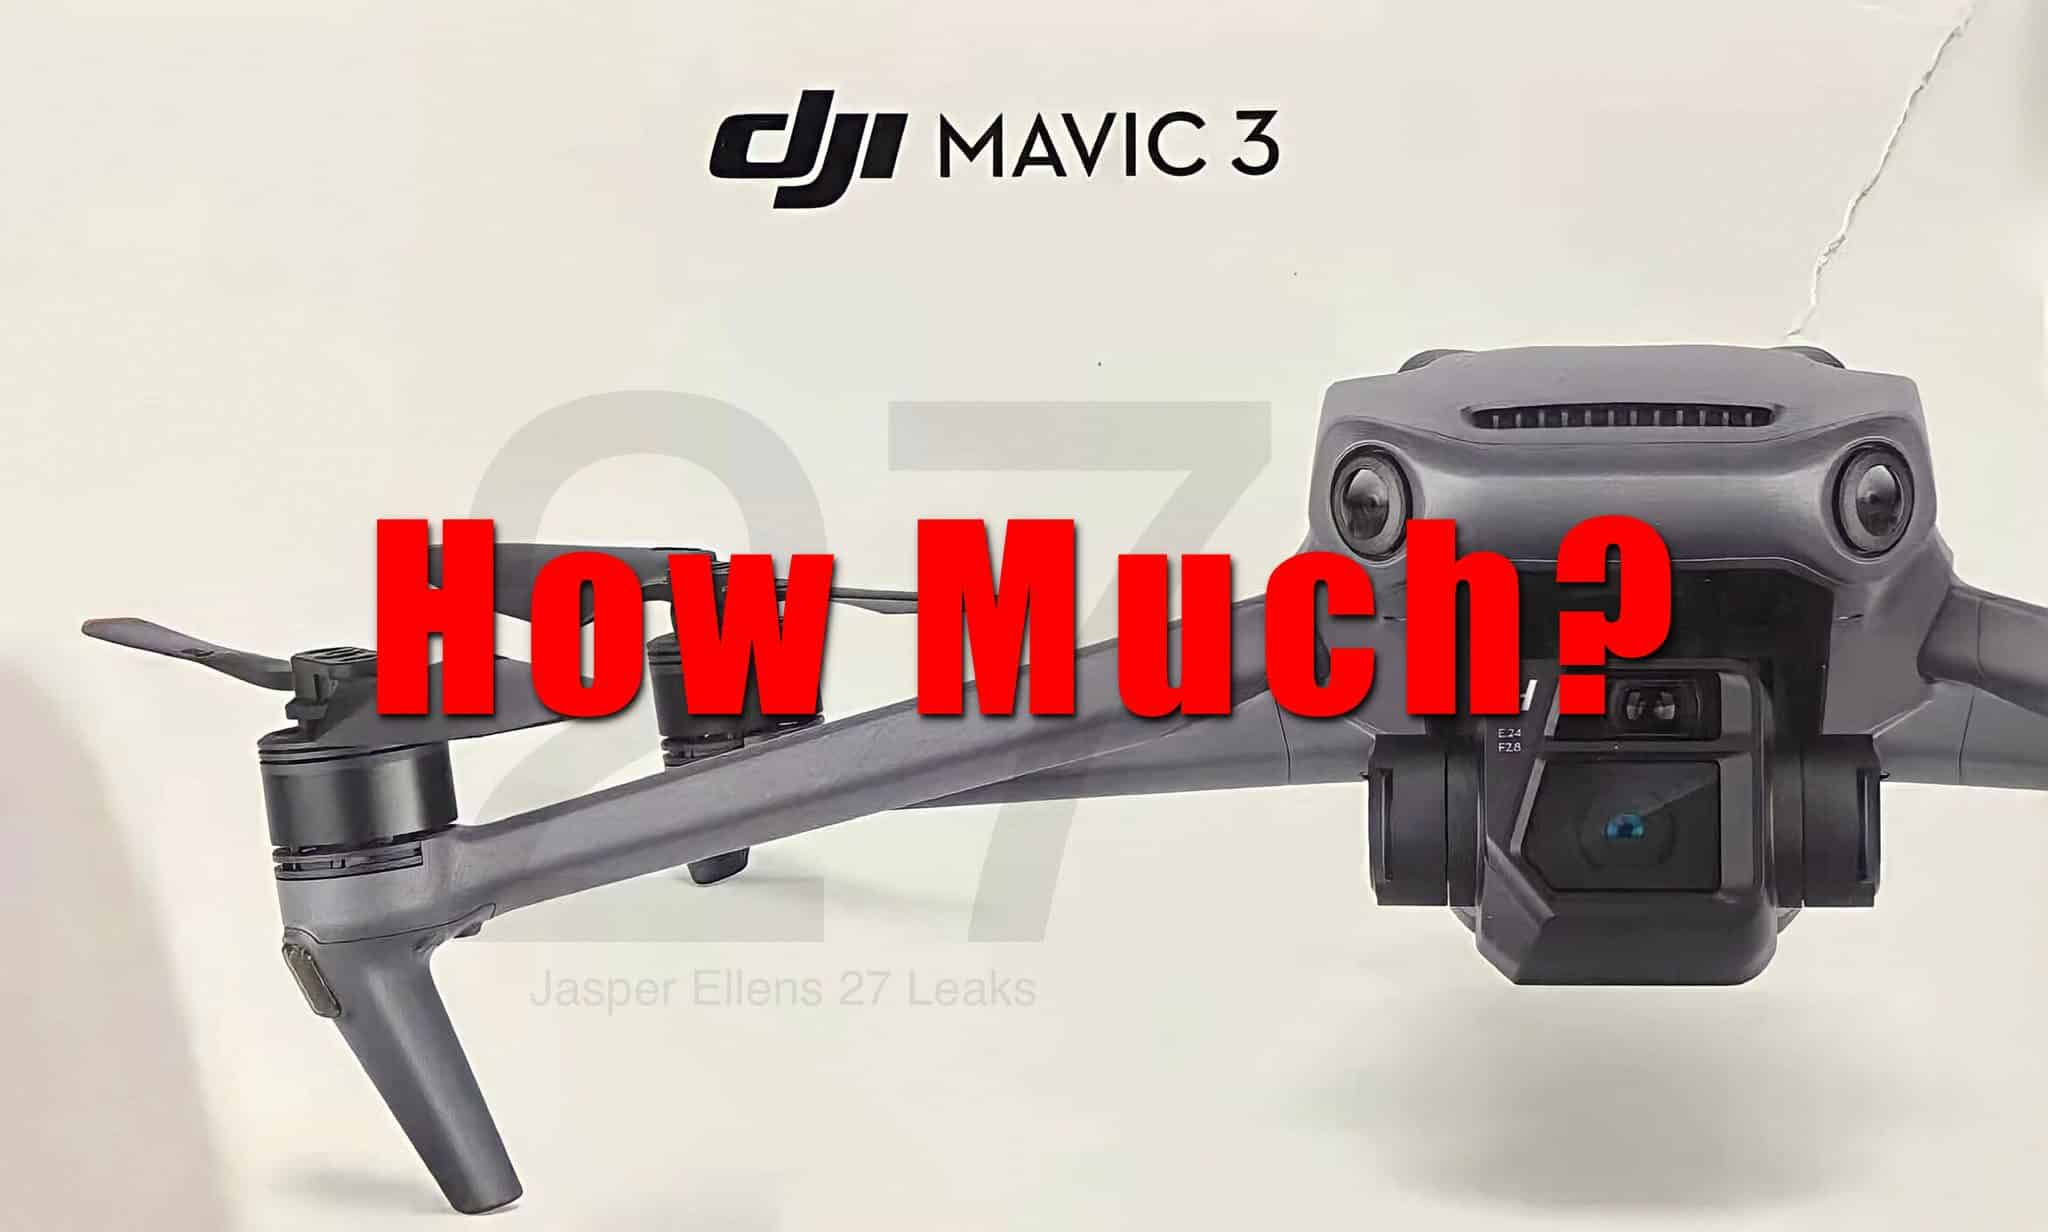 Rumored DJI Mavic 3 price significantly higher than outgoing Mavic 2 Pro drone